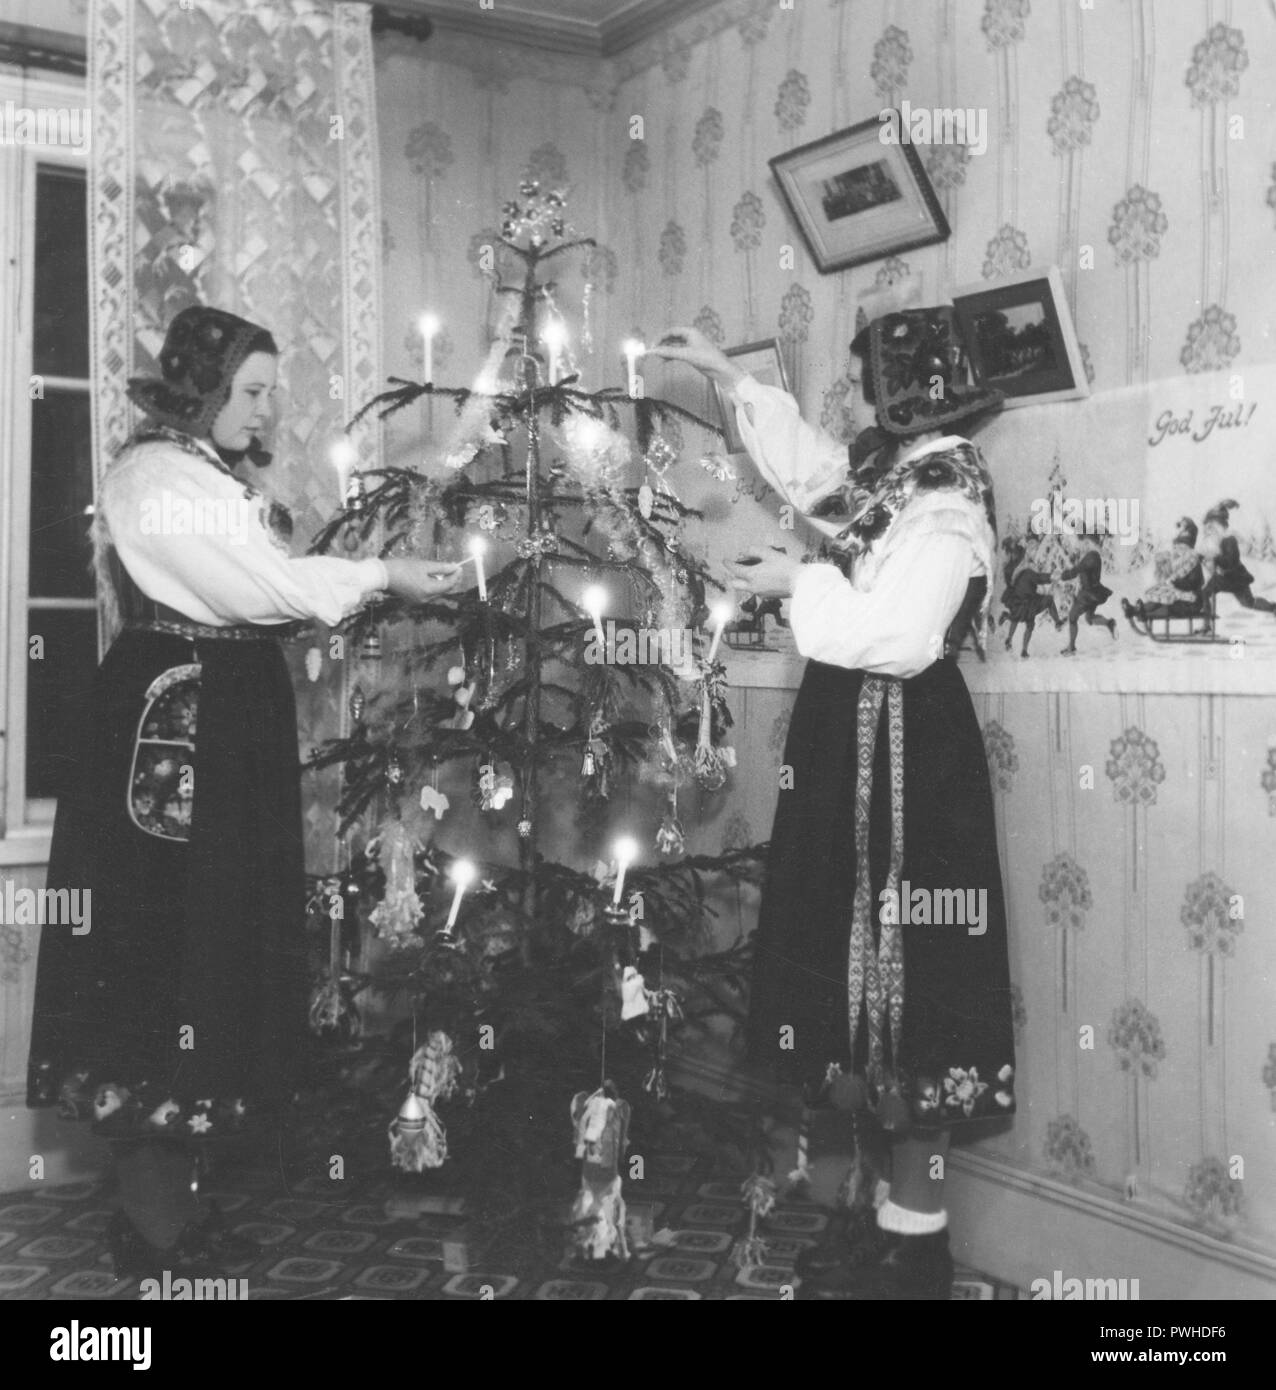 Christmas Tree Sweden: Christmas In The 1940s. Two Young Women In Traditional